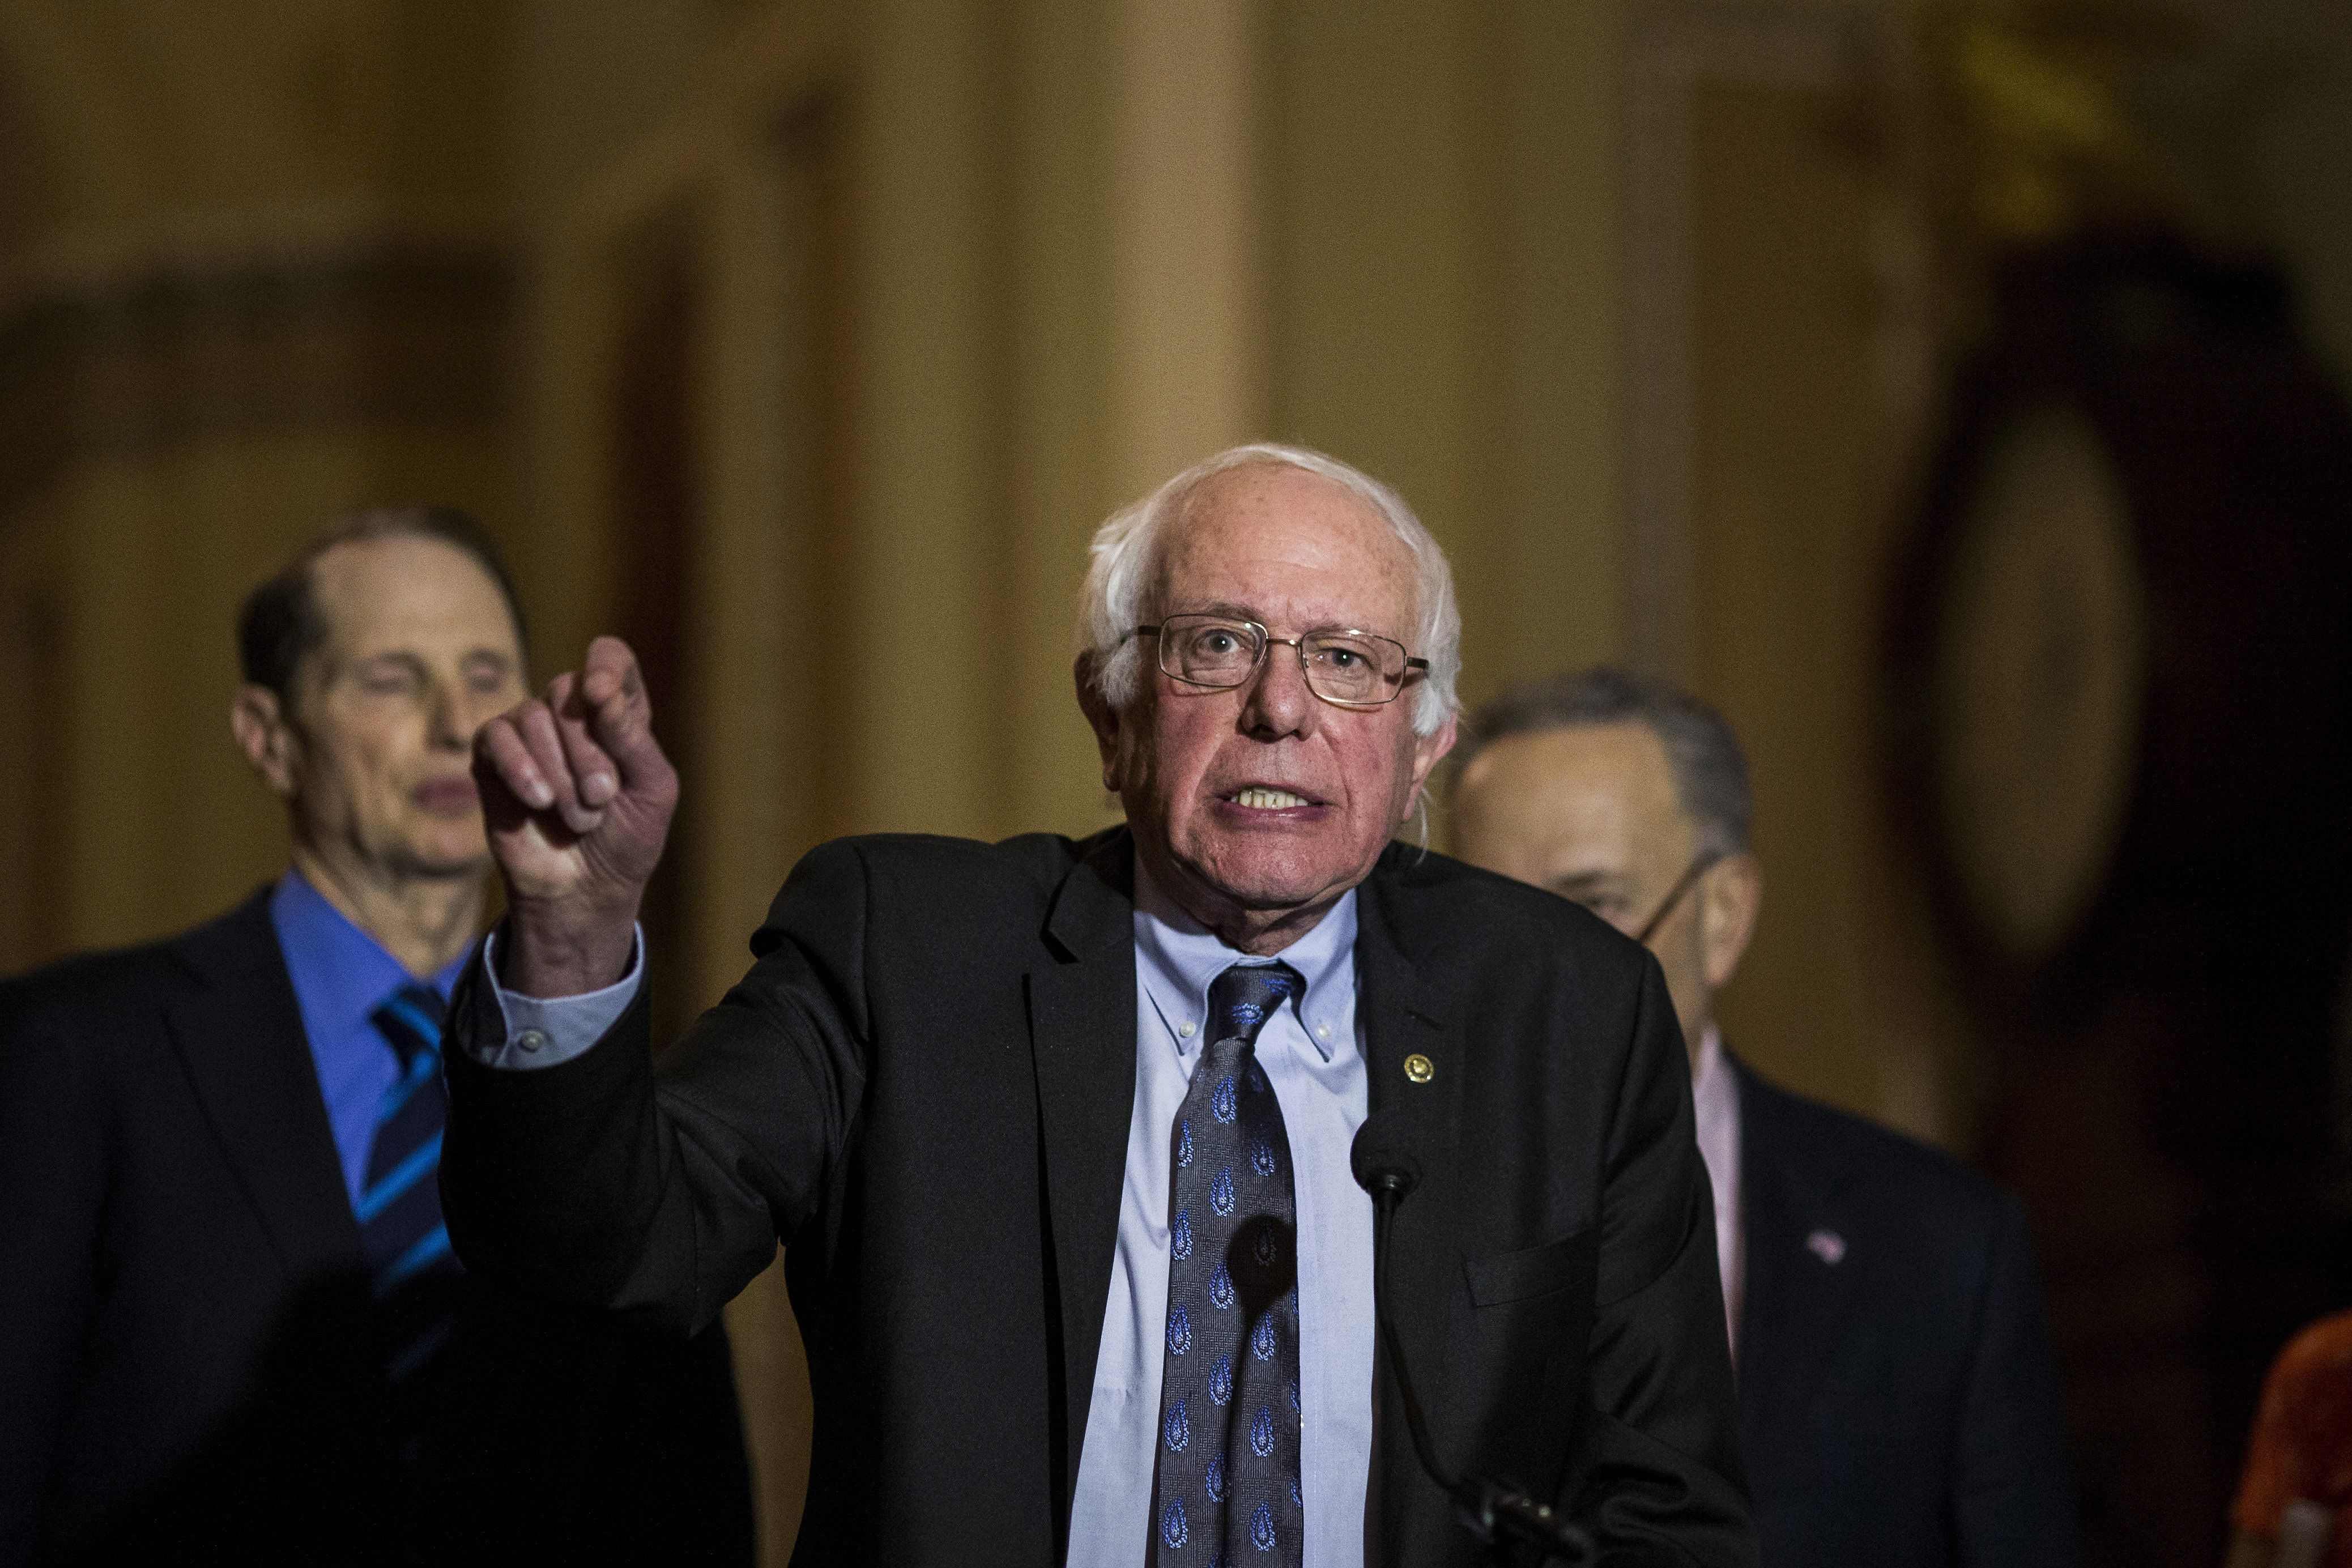 Senator Bernie Sanders, an Independent from Vermont, speaks during a news conference following a weekly policy luncheon on Capitol Hill in Washington, D.C., U.S., on Tuesday, Dec. 19, 2017. This week marks the last leg of Republicans' push to revamp the U.S. tax code, with both the House and Senate planning to vote by Wednesday on final legislation before sending it to President Donald Trump. Photographer: Zach Gibson/Bloomberg via Getty Images